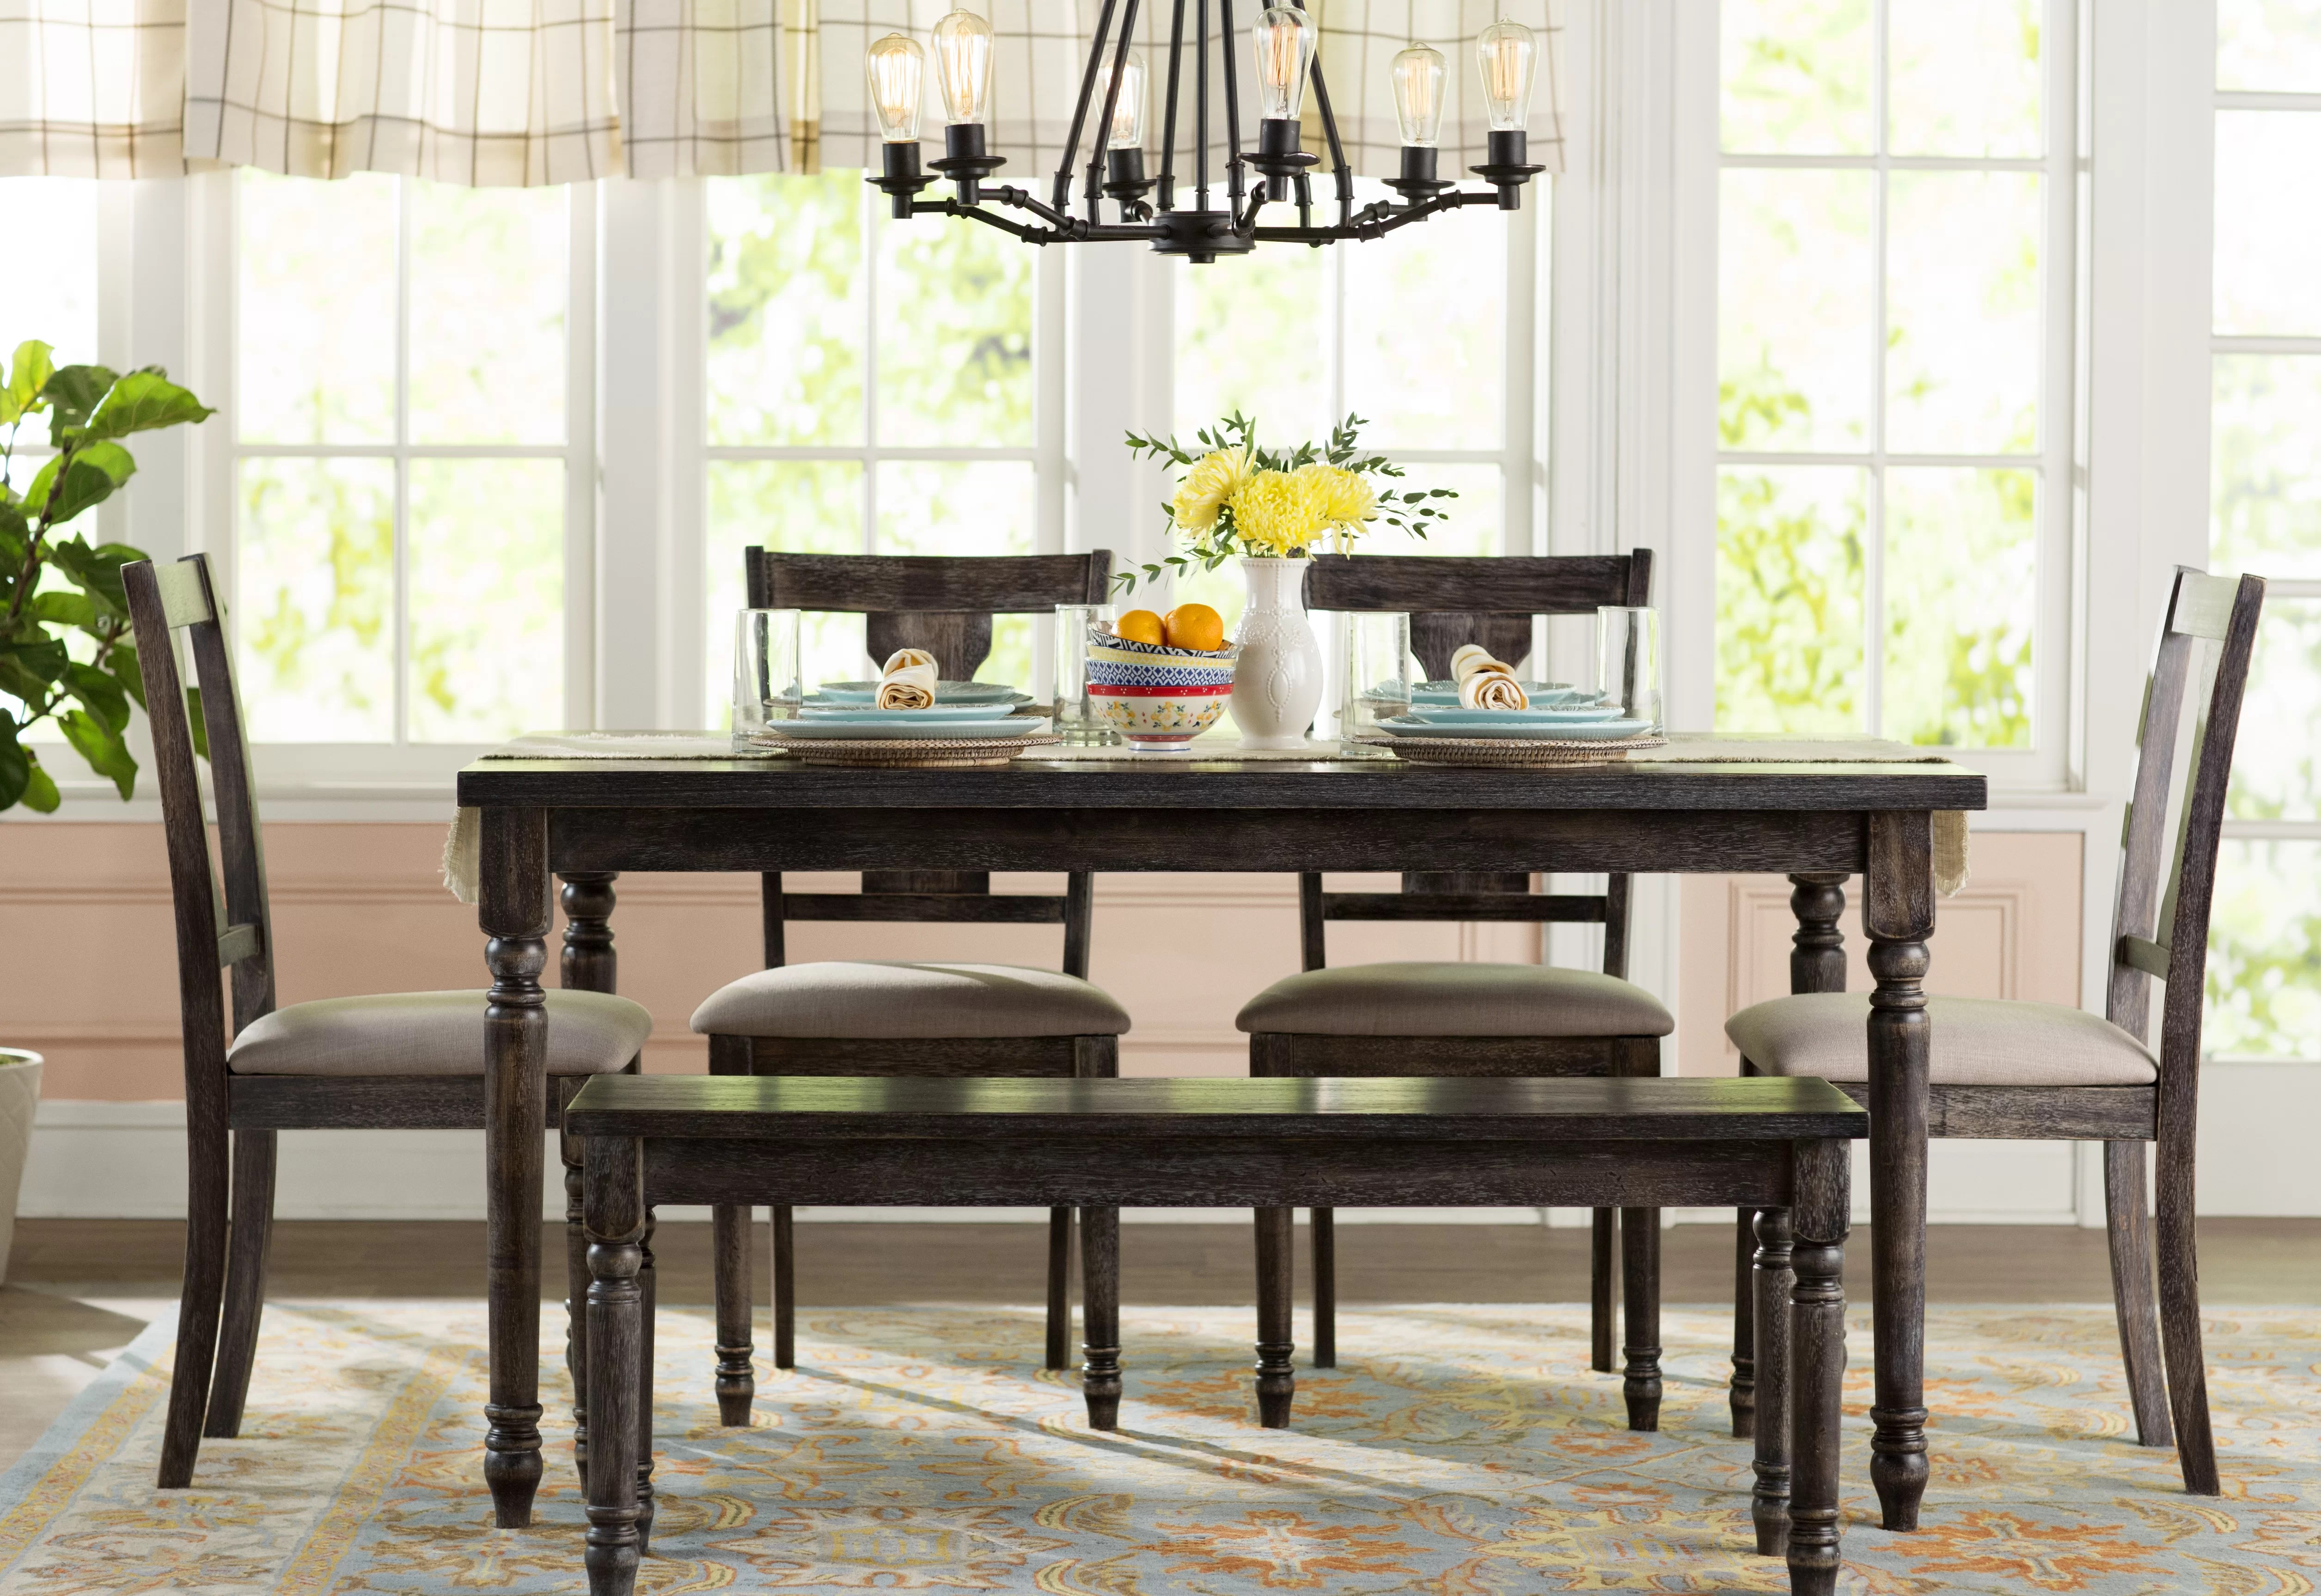 Upgrade Your Dining Room With These Types Of Chairs Wayfair